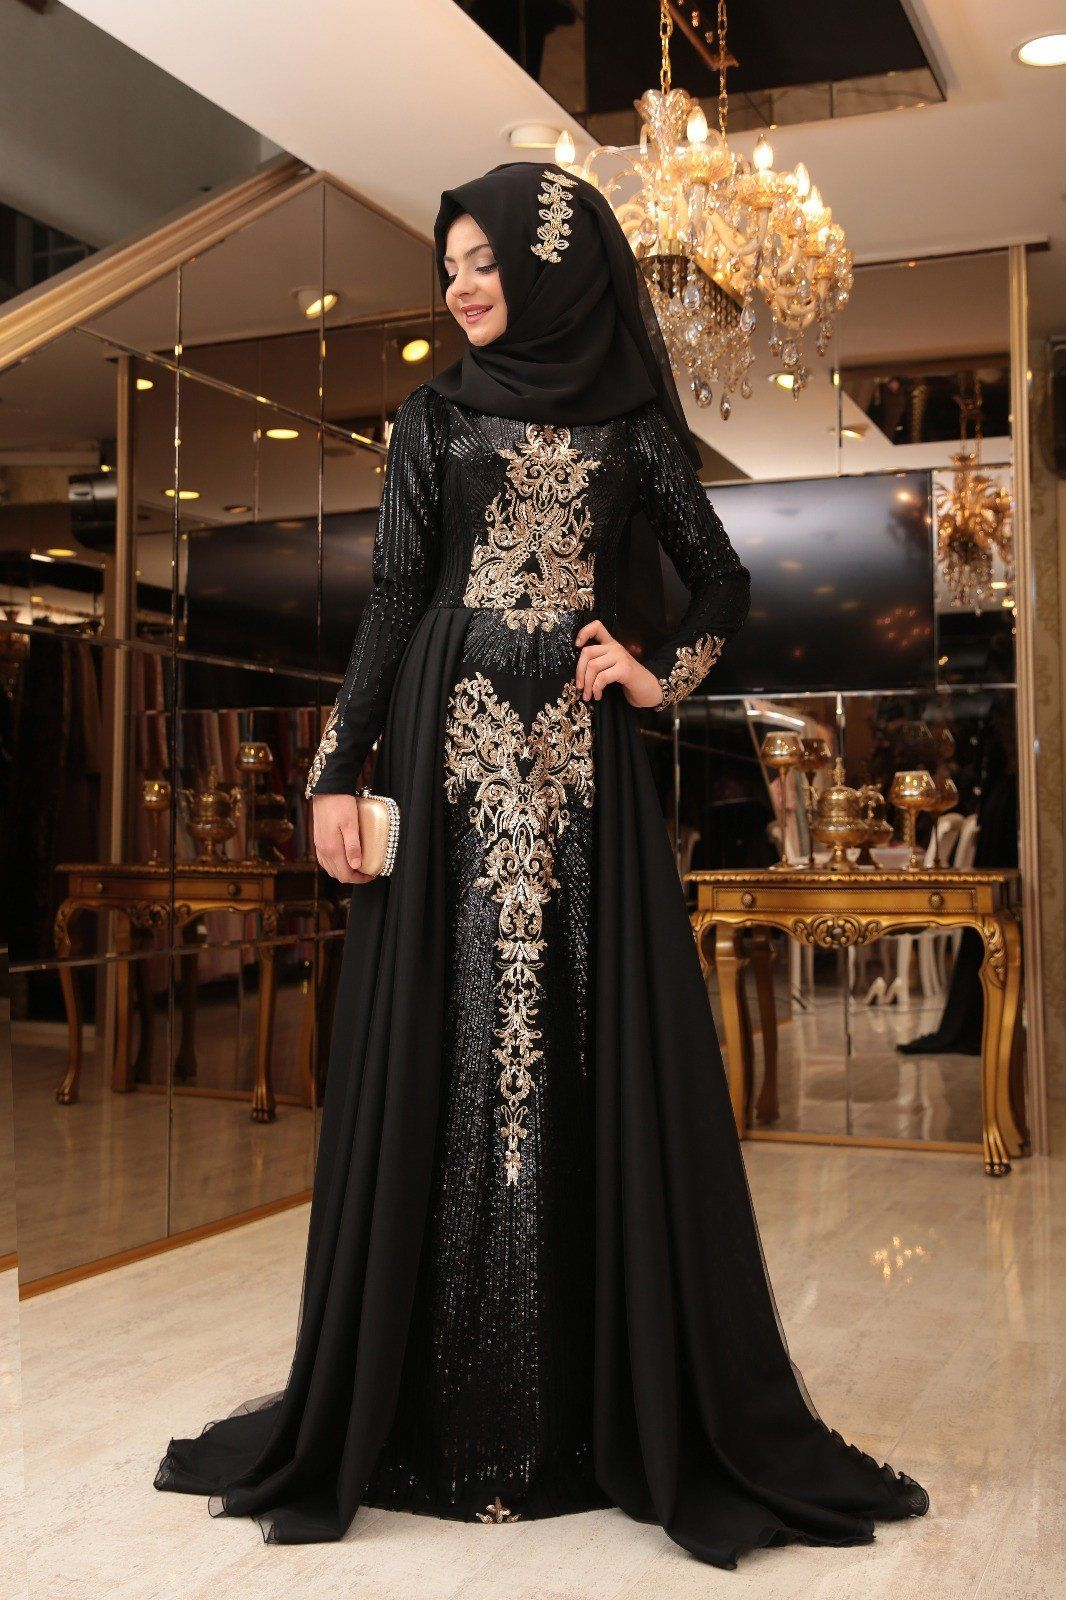 Starry nights royal gown black final stock with limited stock in